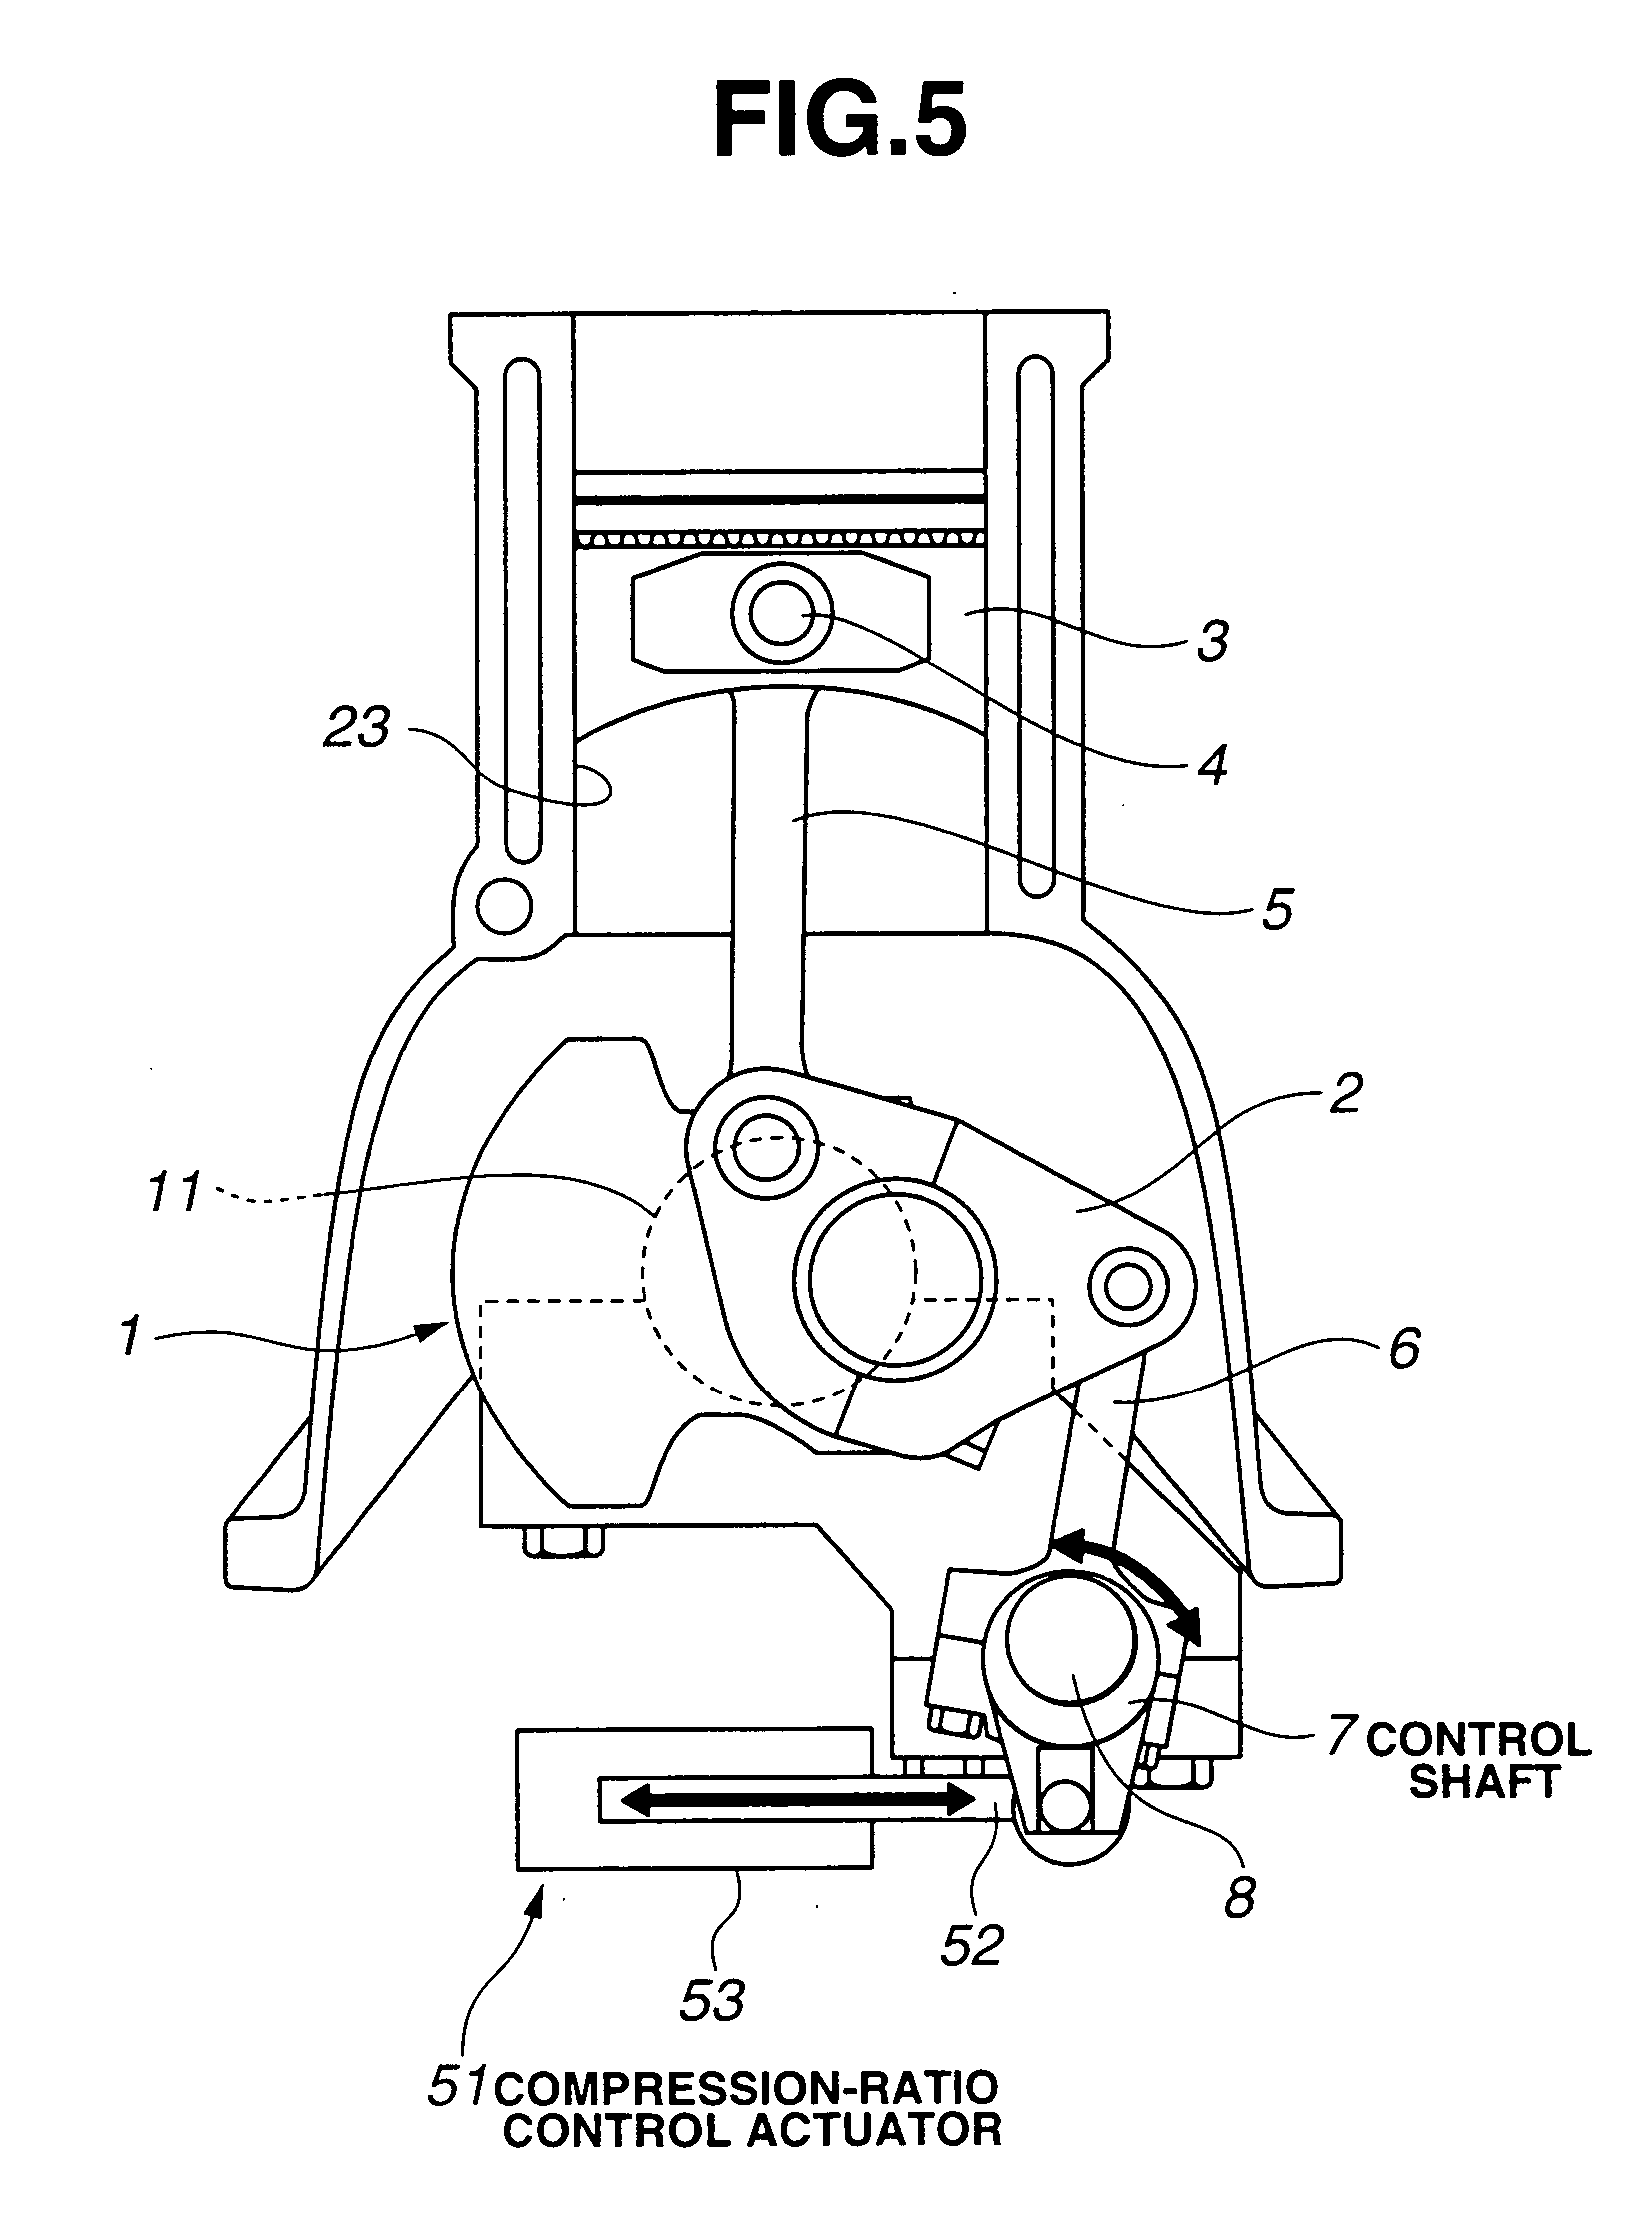 Patent US Reciprocating Engine With A